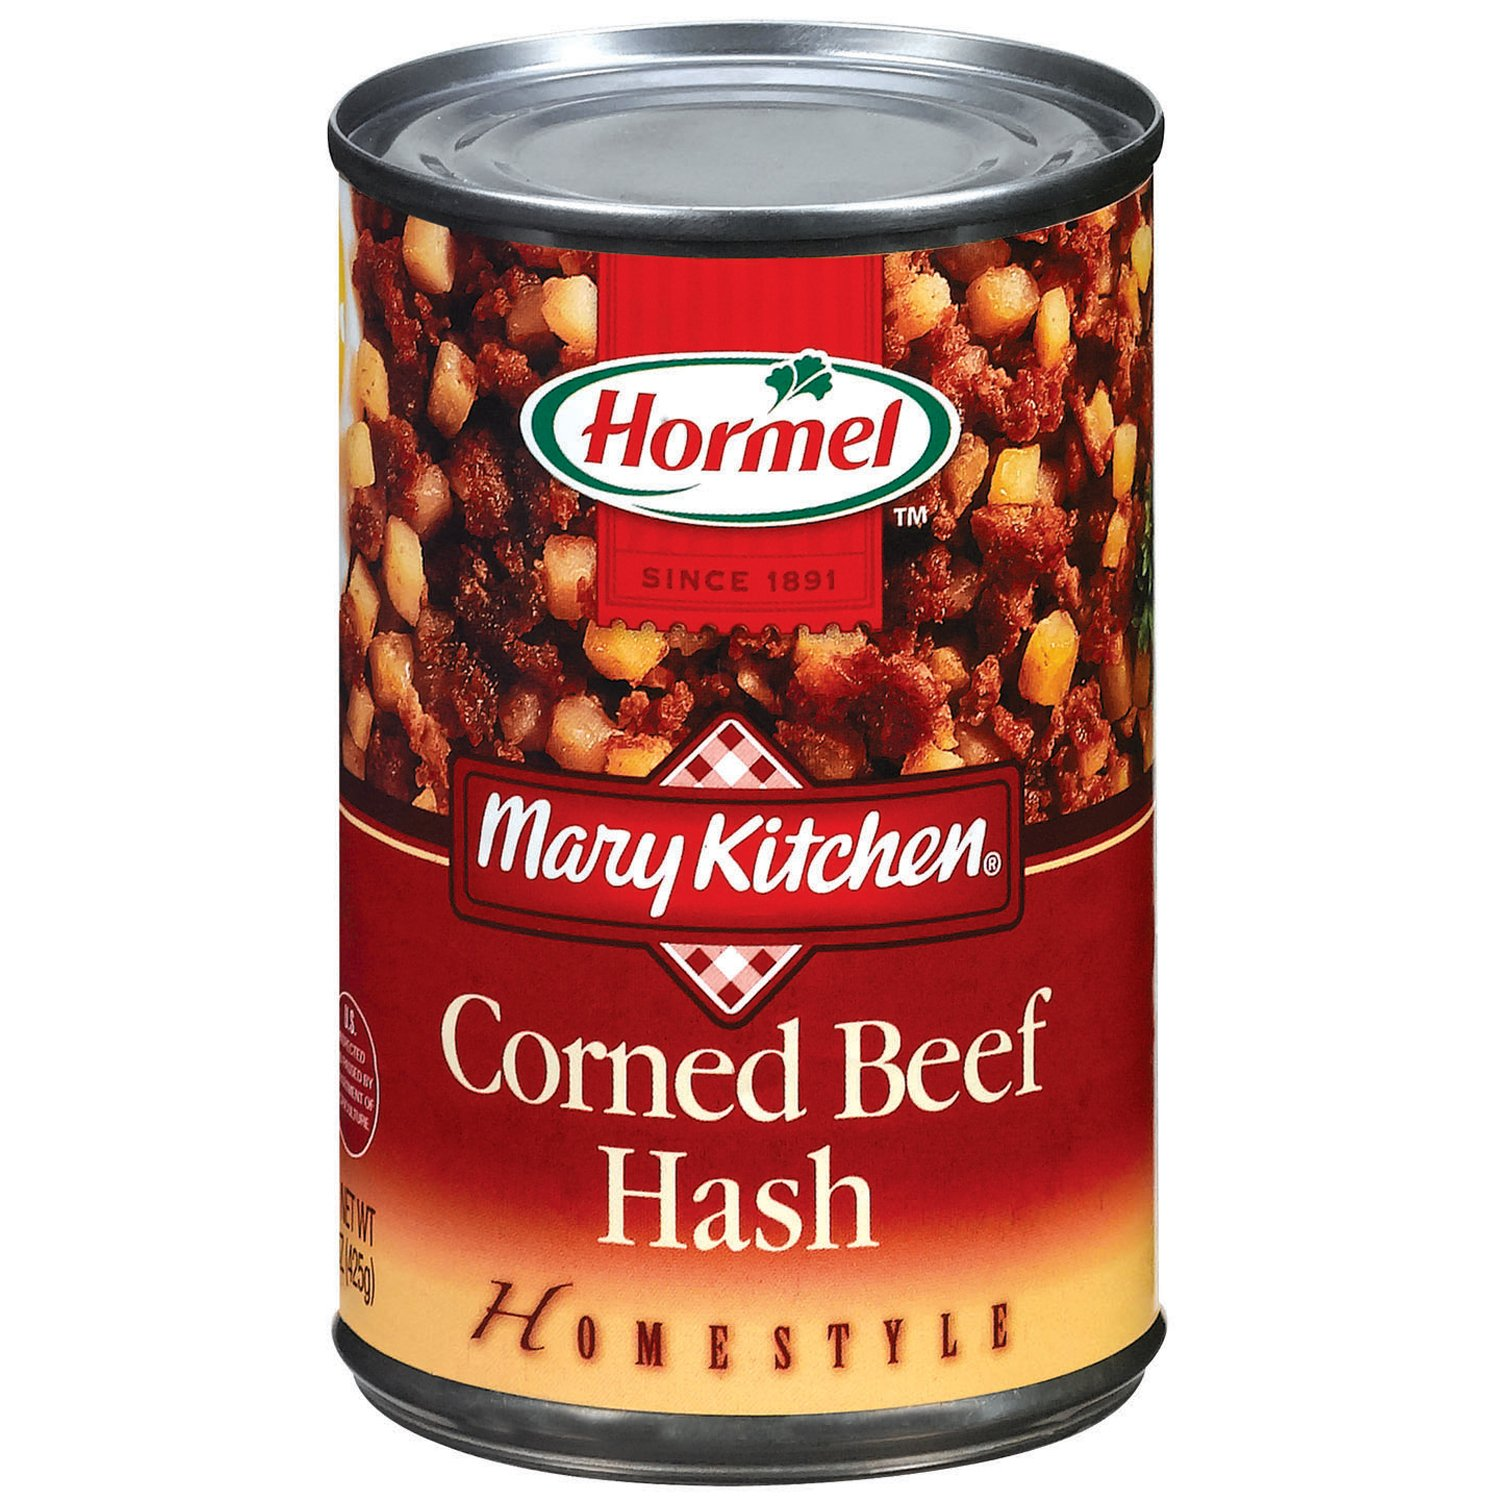 hormel mary kitchen homestyle corned beef hash - shop canned meat